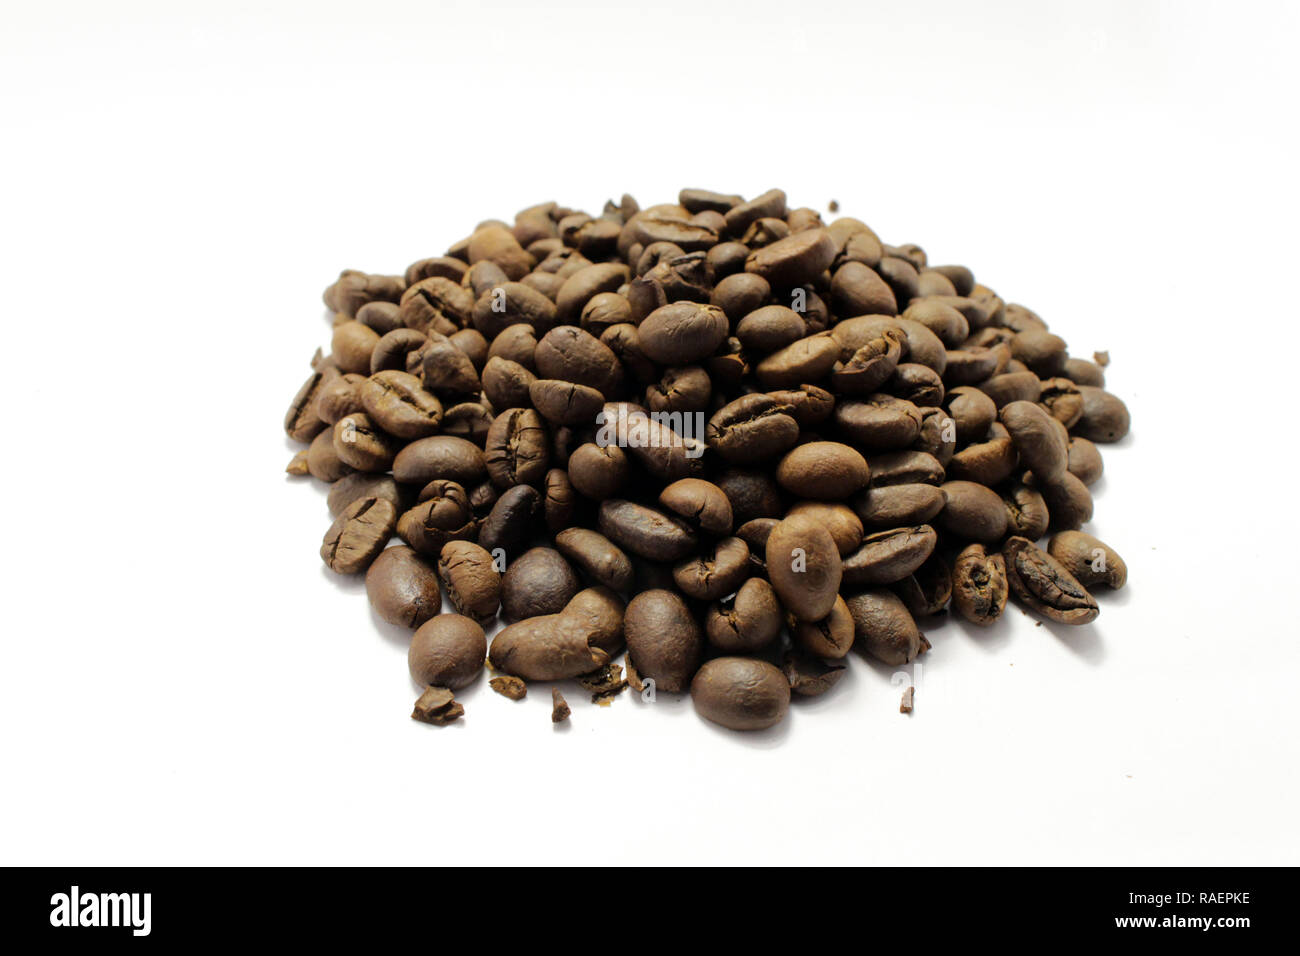 Indonesian roasted coffee beans, your source for a cup of coffee. Fresh! - Stock Image